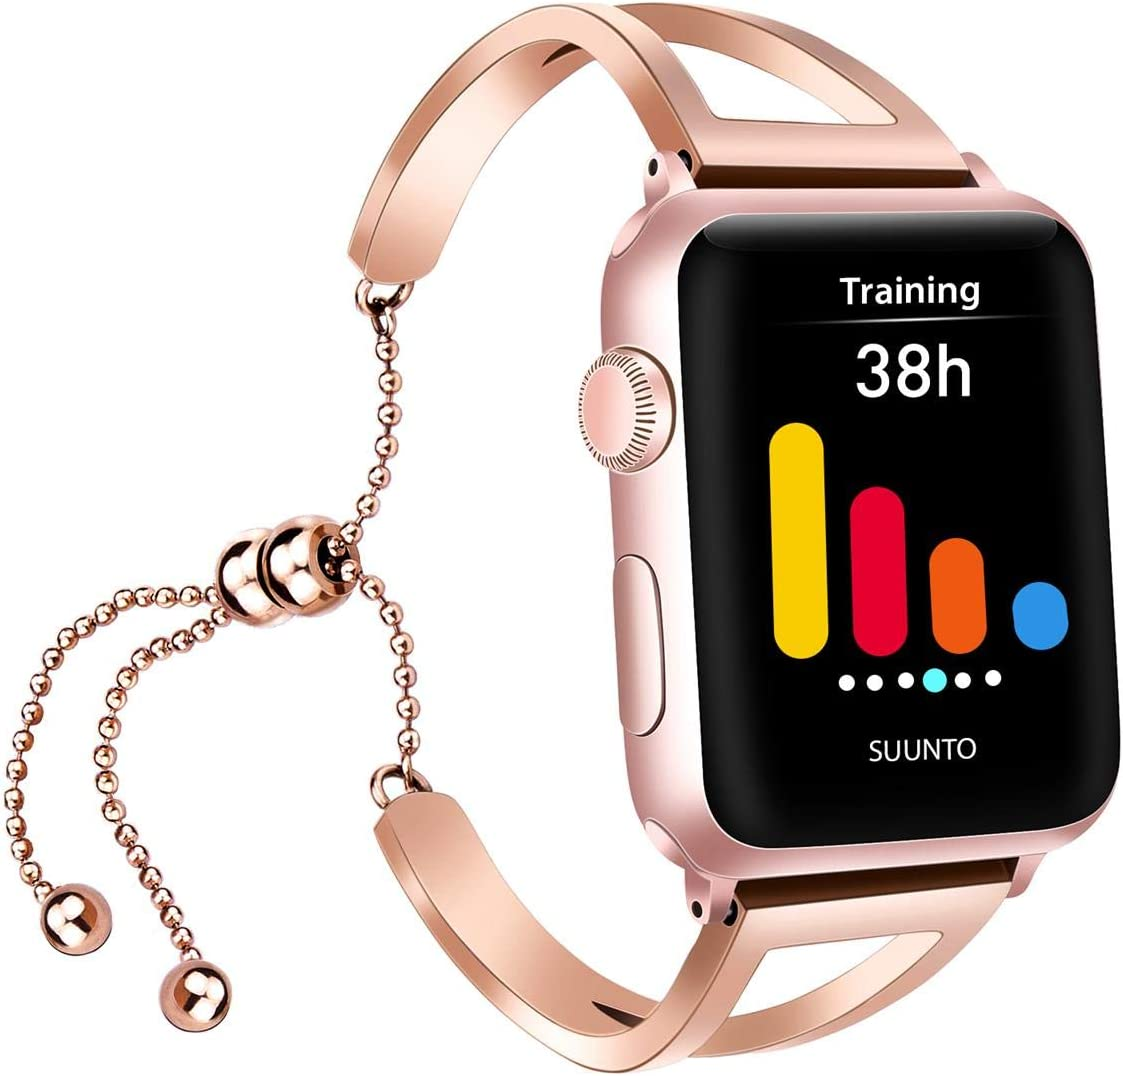 iGK Compatible with Apple Watch Band 38mm 40mm 42mm 44mm Women Jewelry Metal Cuff Strap Dressy Bangle Bracelet for Apple iWatch SE Series 6/5/4/3/2/1